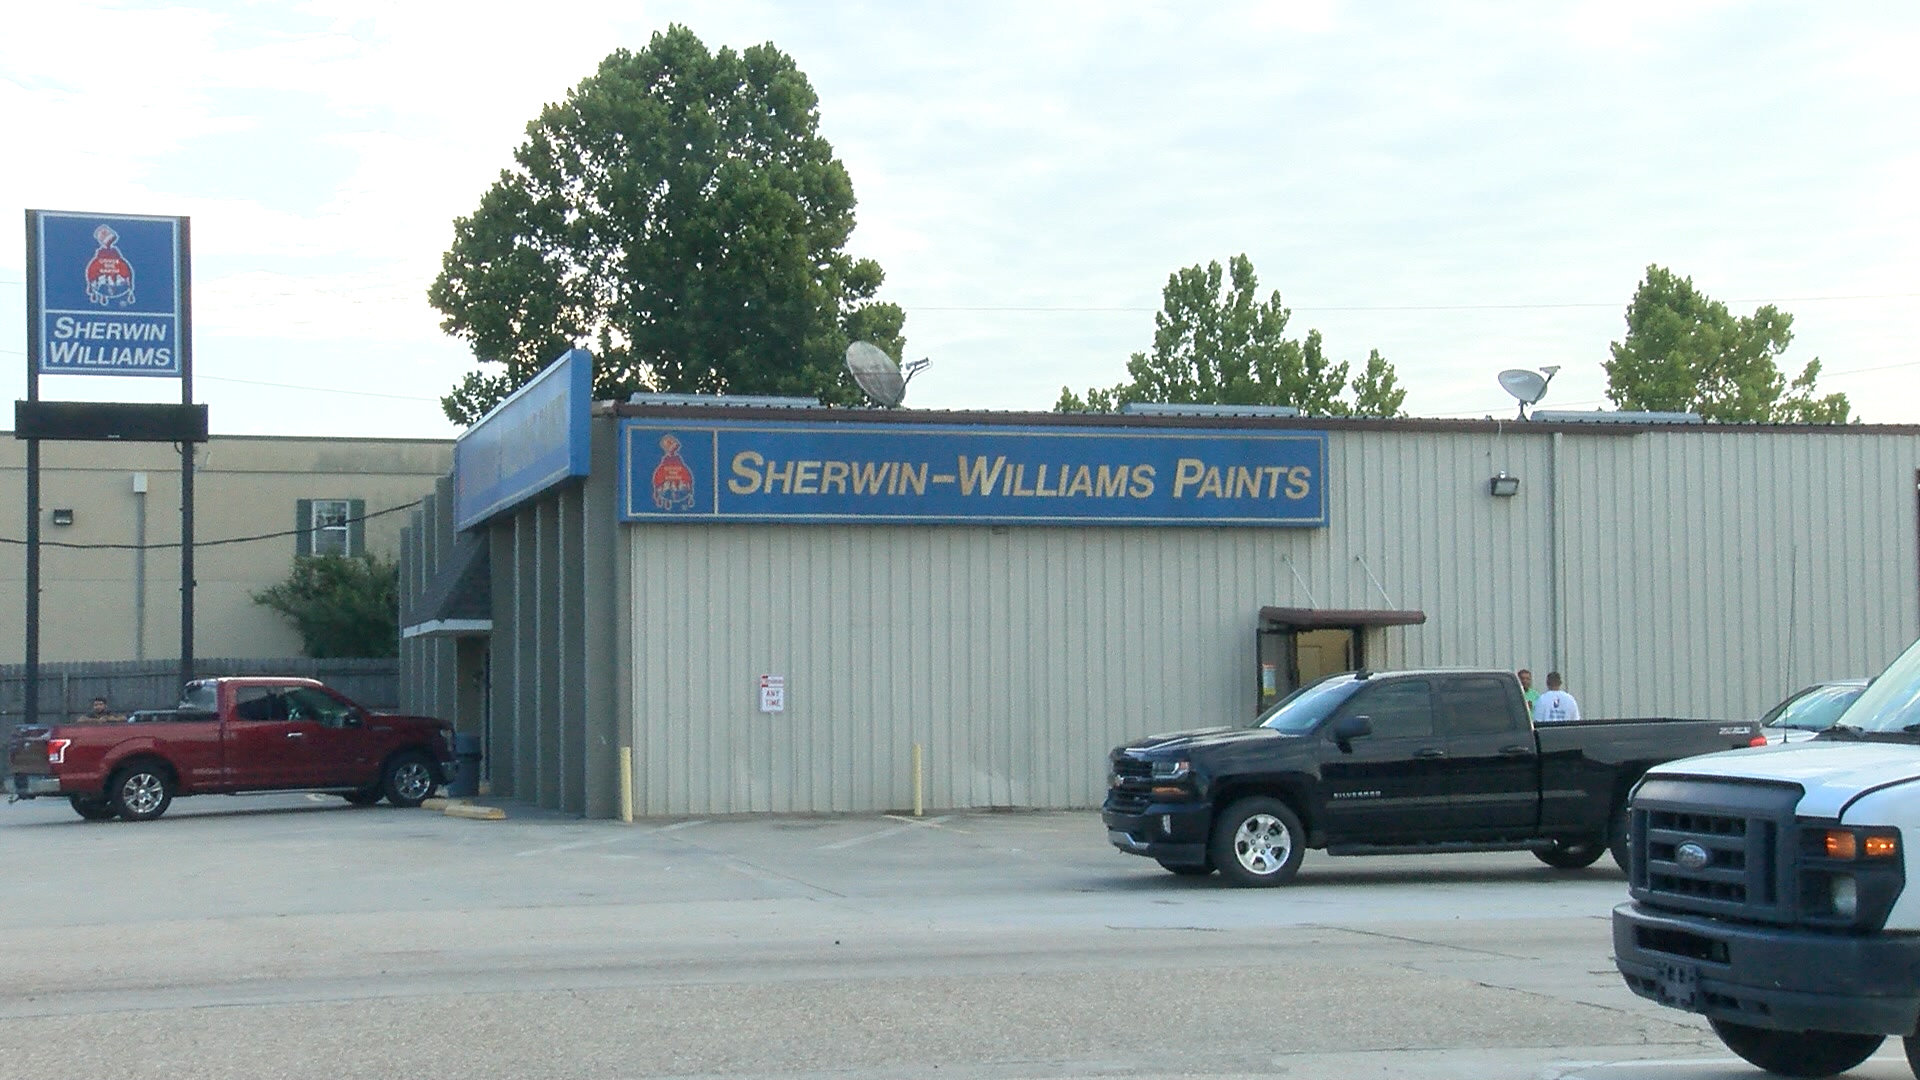 SGFD called to reported smoke inside Sherwin-Williams Paint